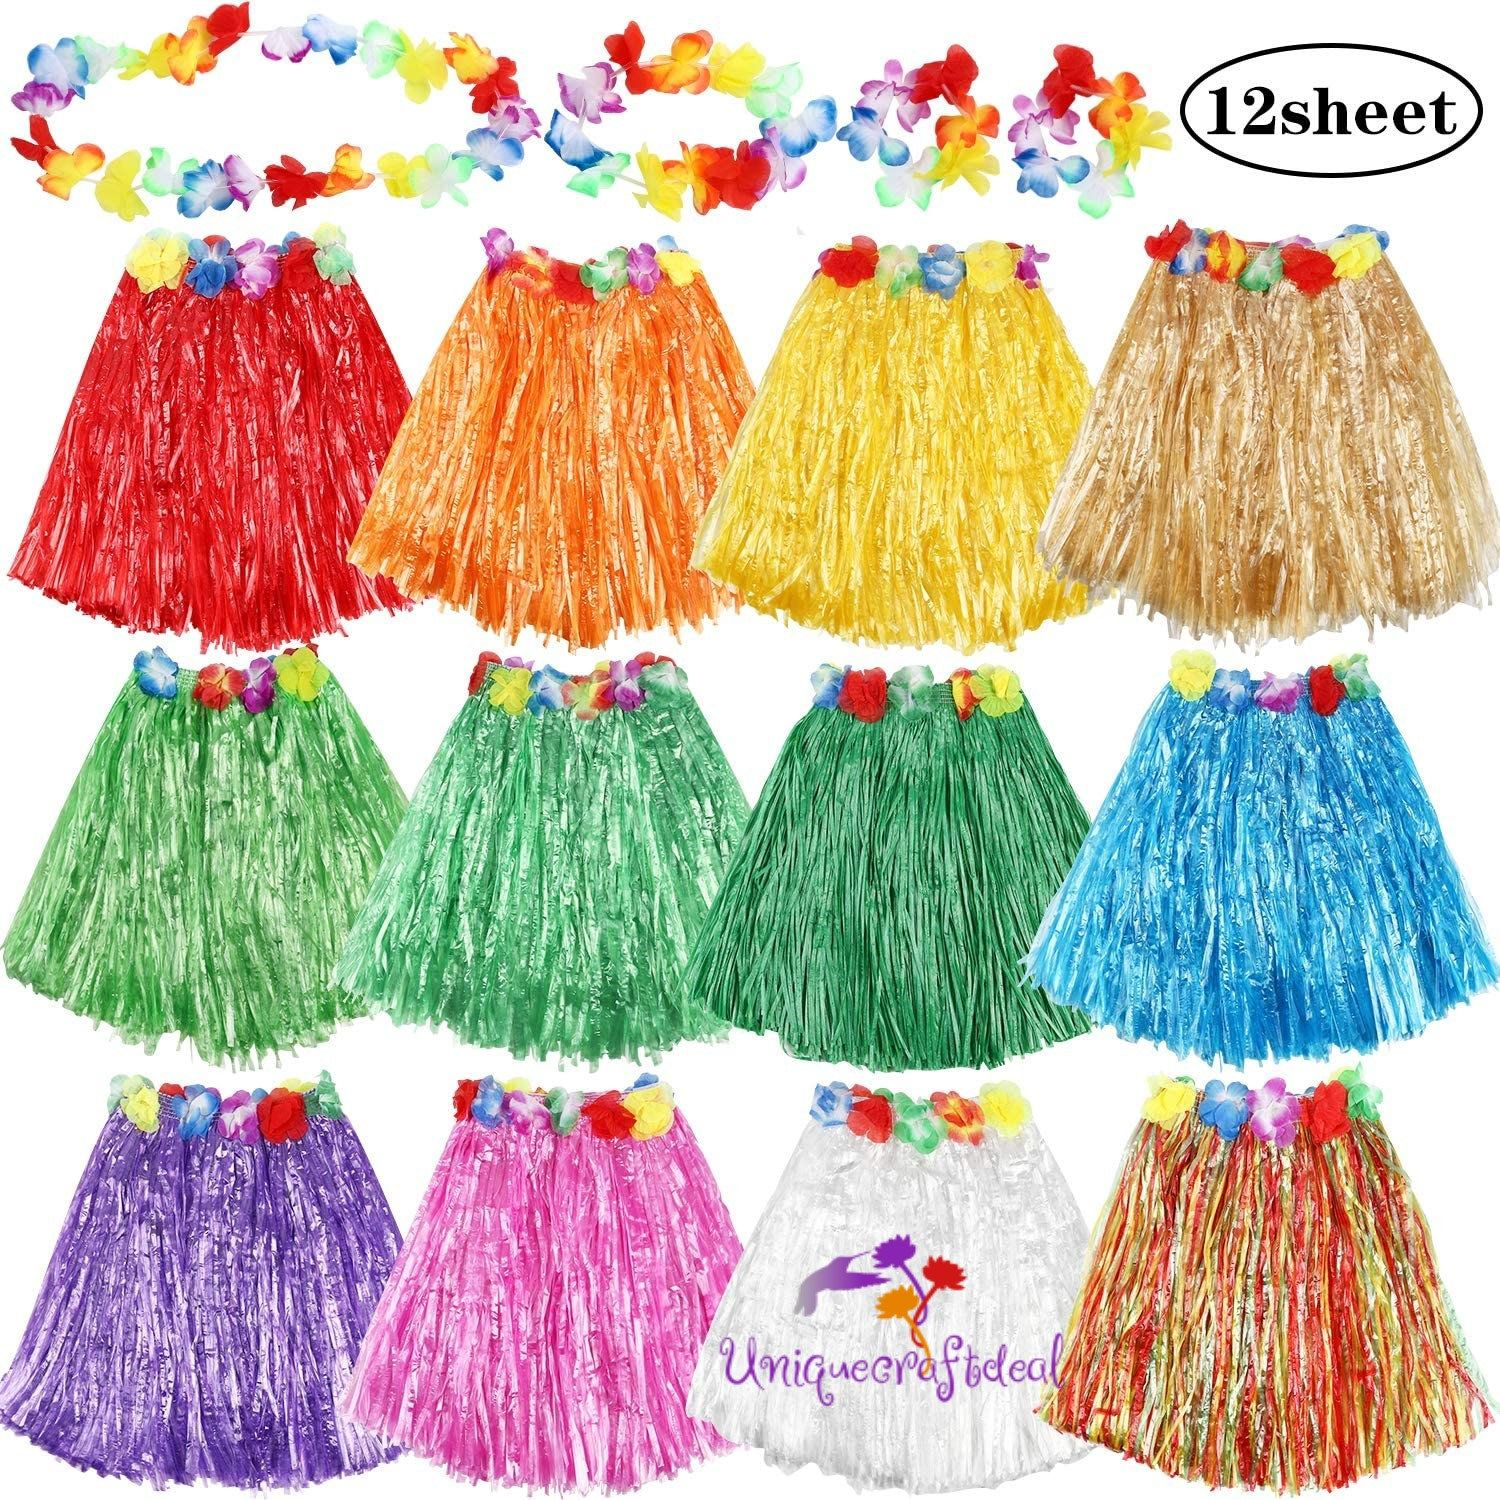 Excited To Share The Latest Addition To My Etsy Shop Pack Of 12 Assorted Colors Hula Grass Skirts With Flower Leis Cost In 2020 Luau Grass Skirt Hawaiian Grass Skirt